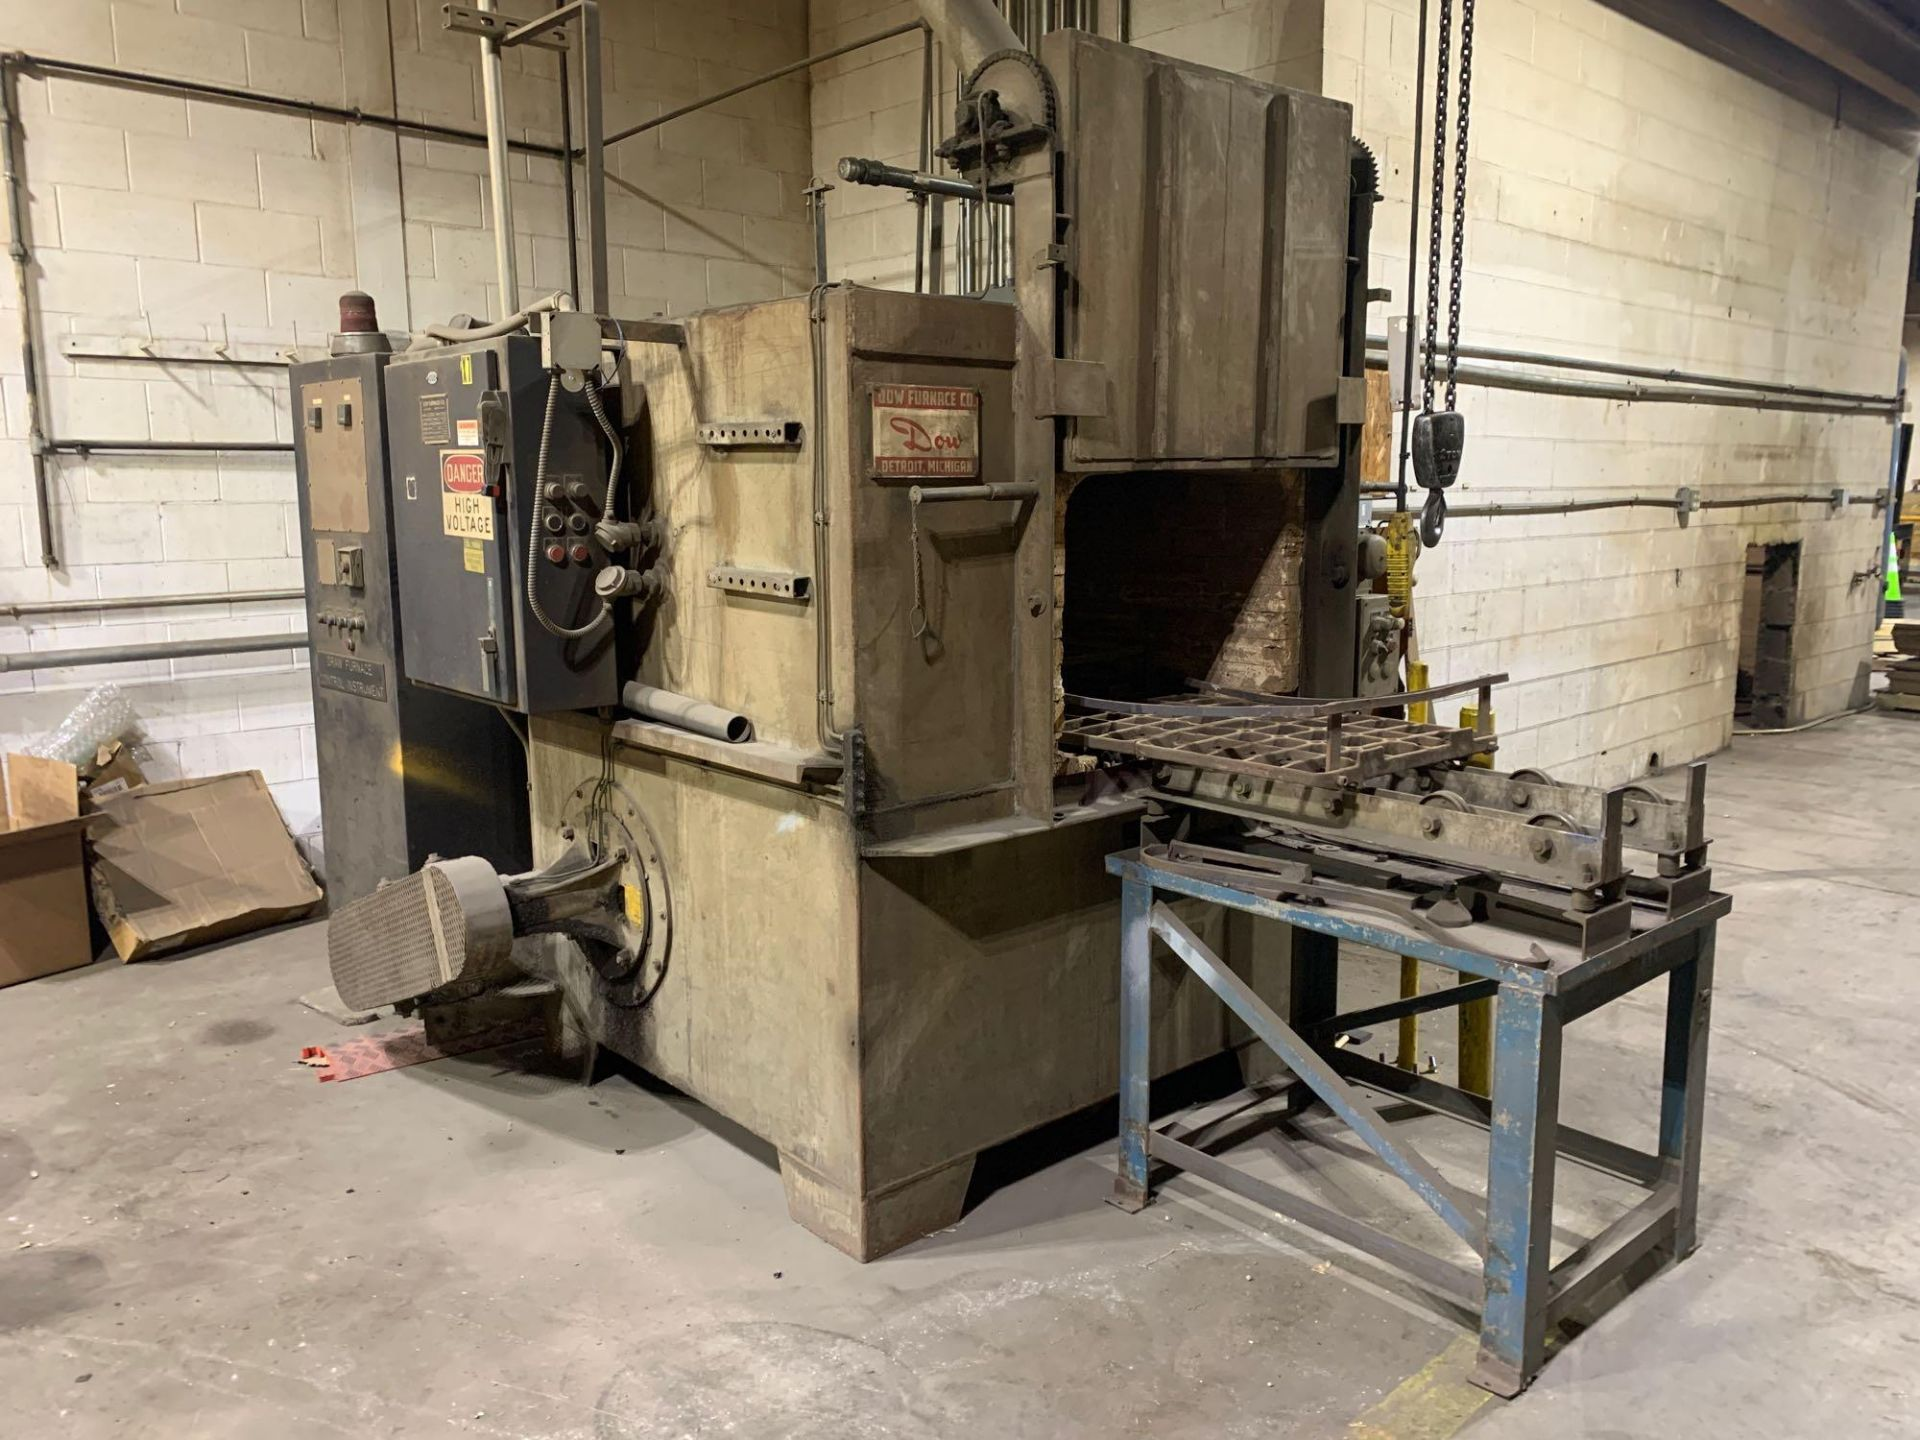 Dow Furnace Co. Electric Draw Furnace Seller States It Will Do At Least 1200 Degrees Model Bxe-24362